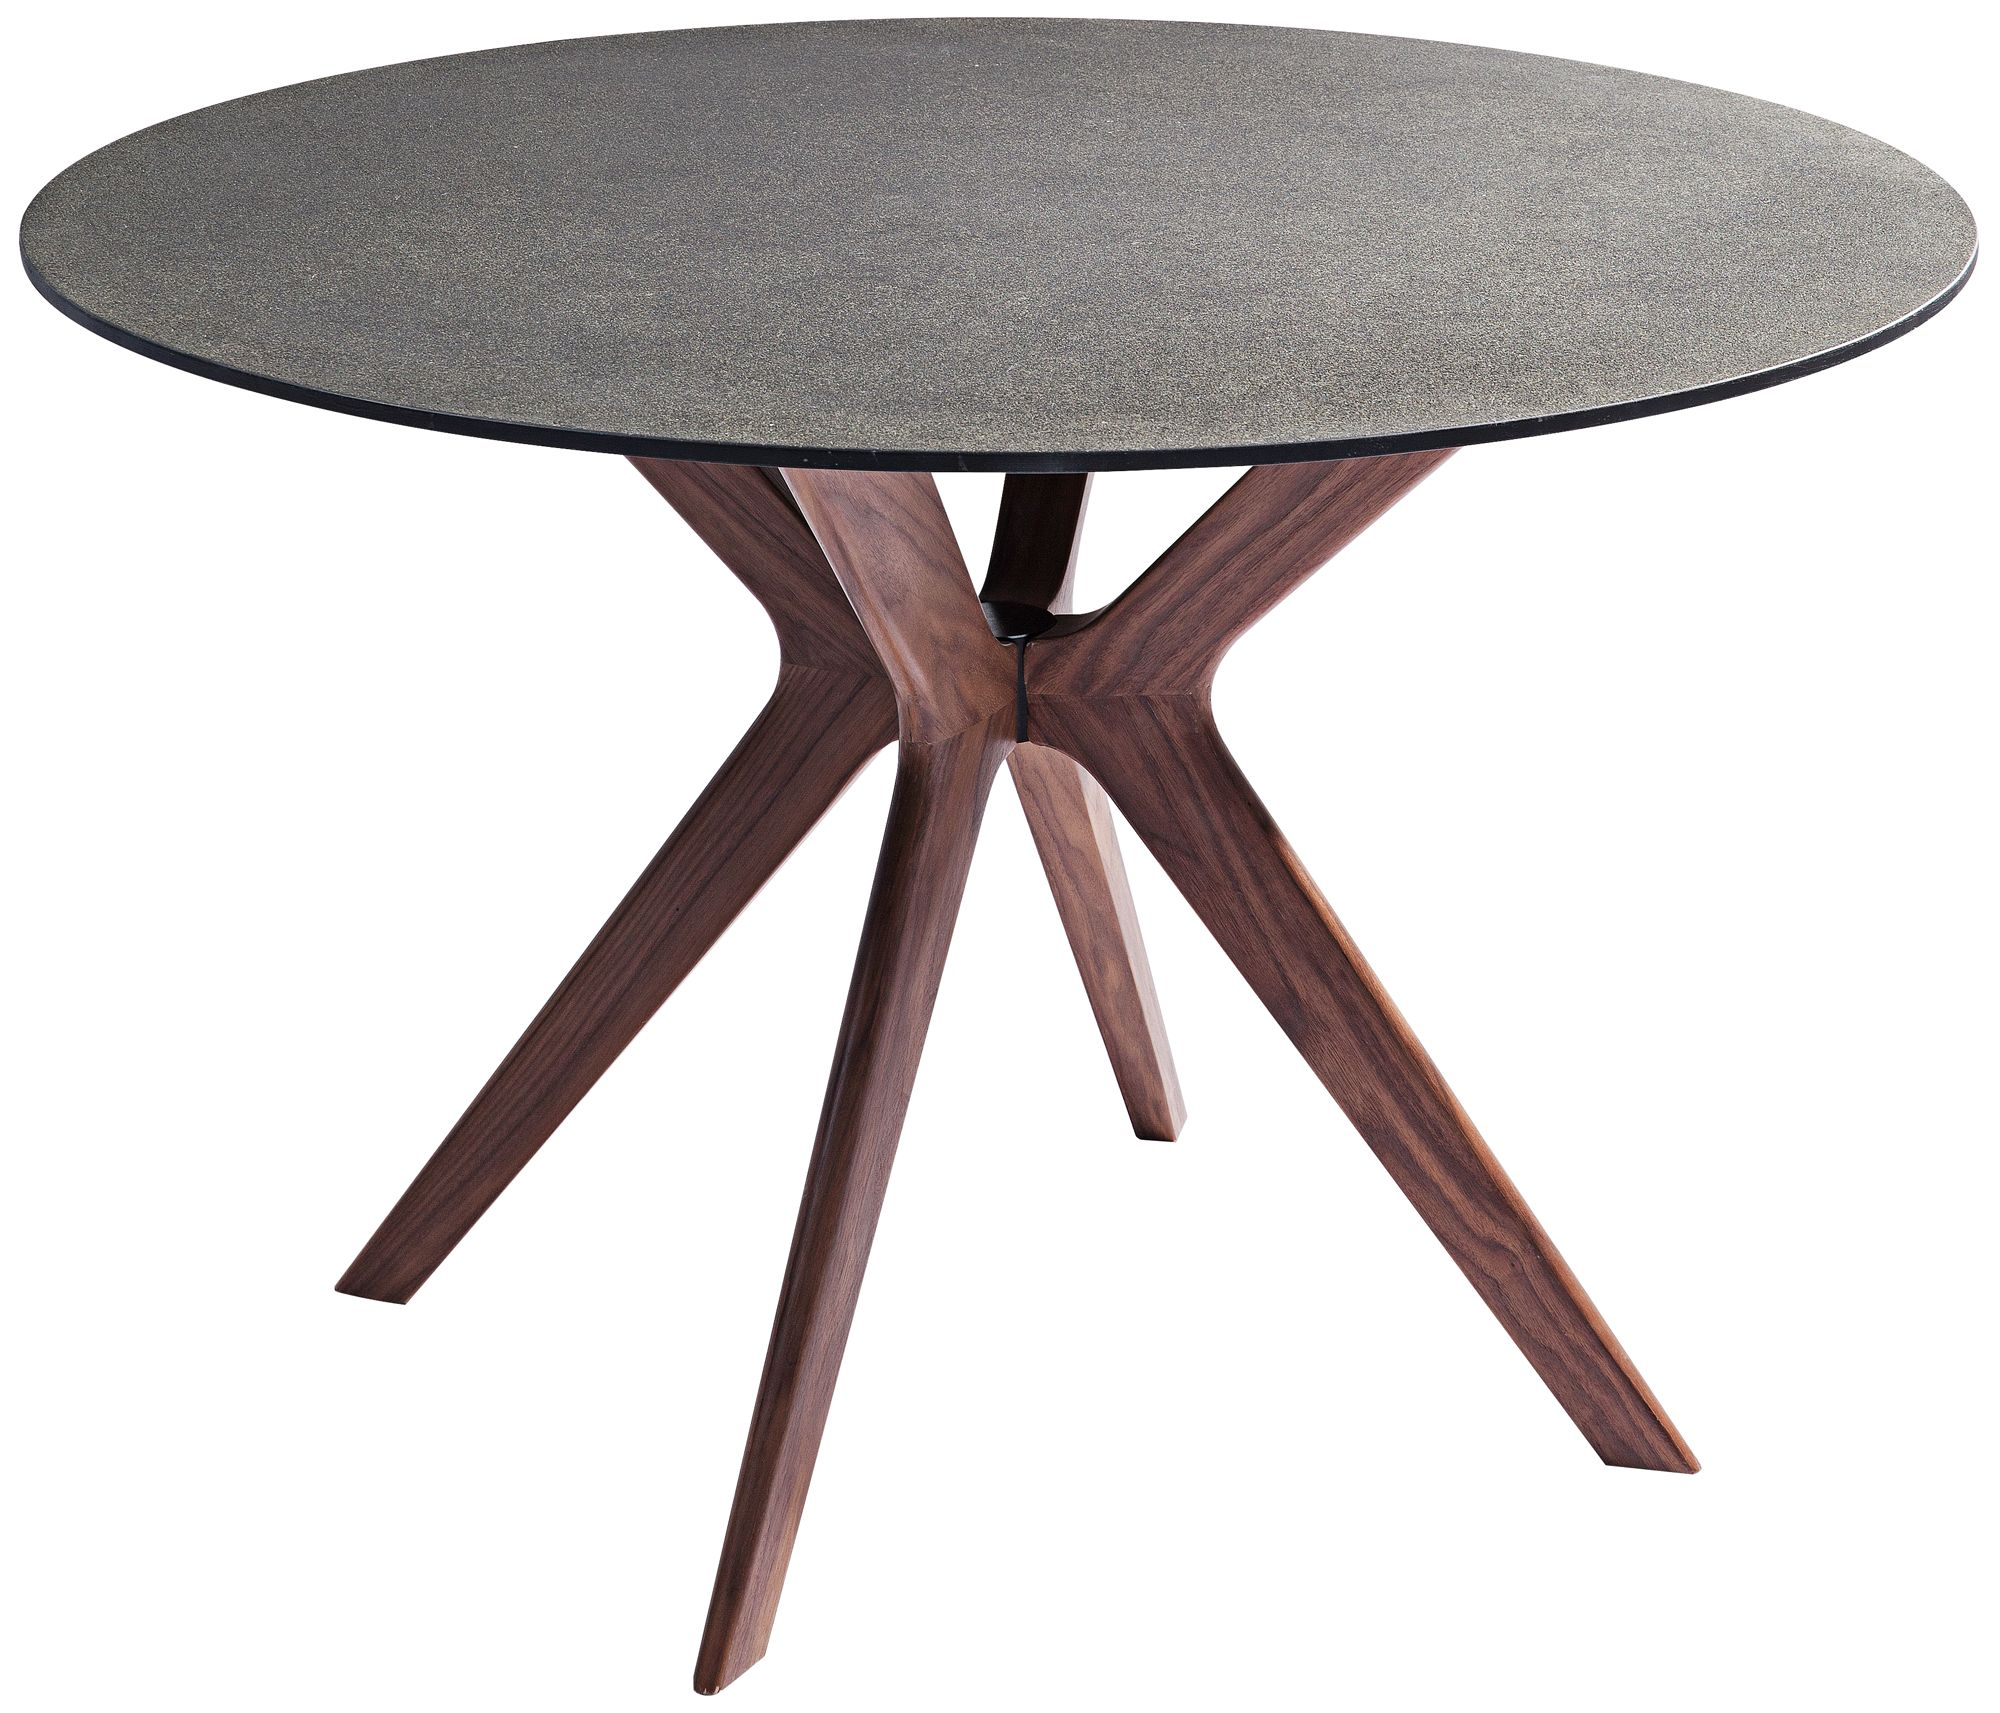 Redondo Round Walnut With Glass And Stone Top Dining Table